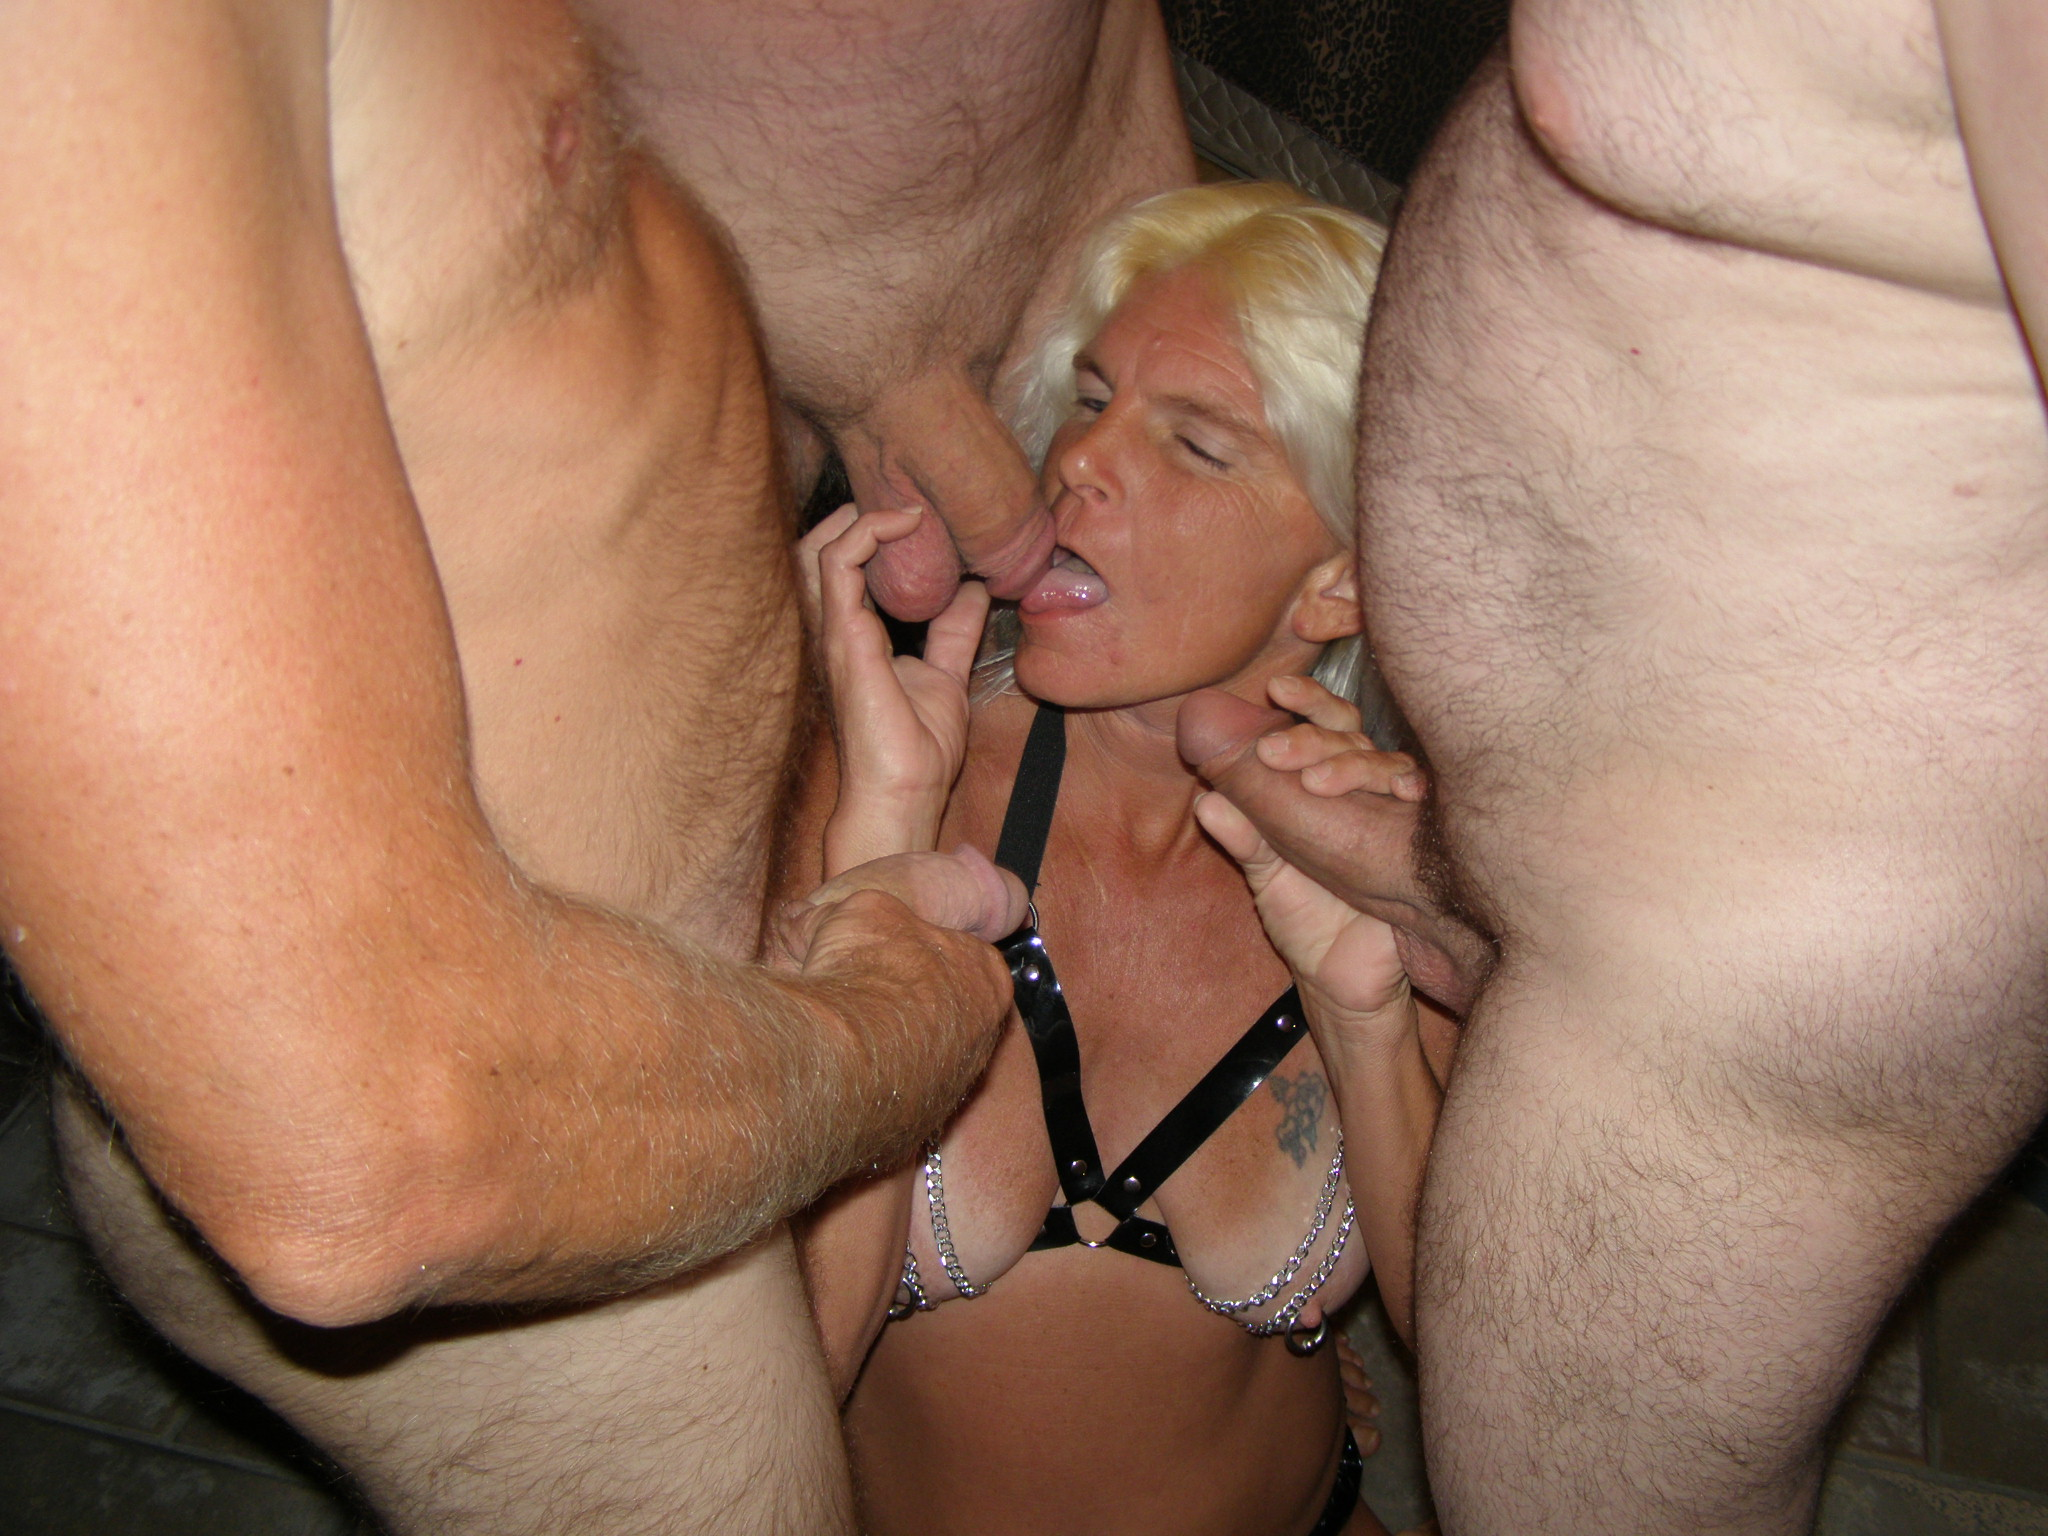 can have traditional Milf glory hole el monte very touchy feely